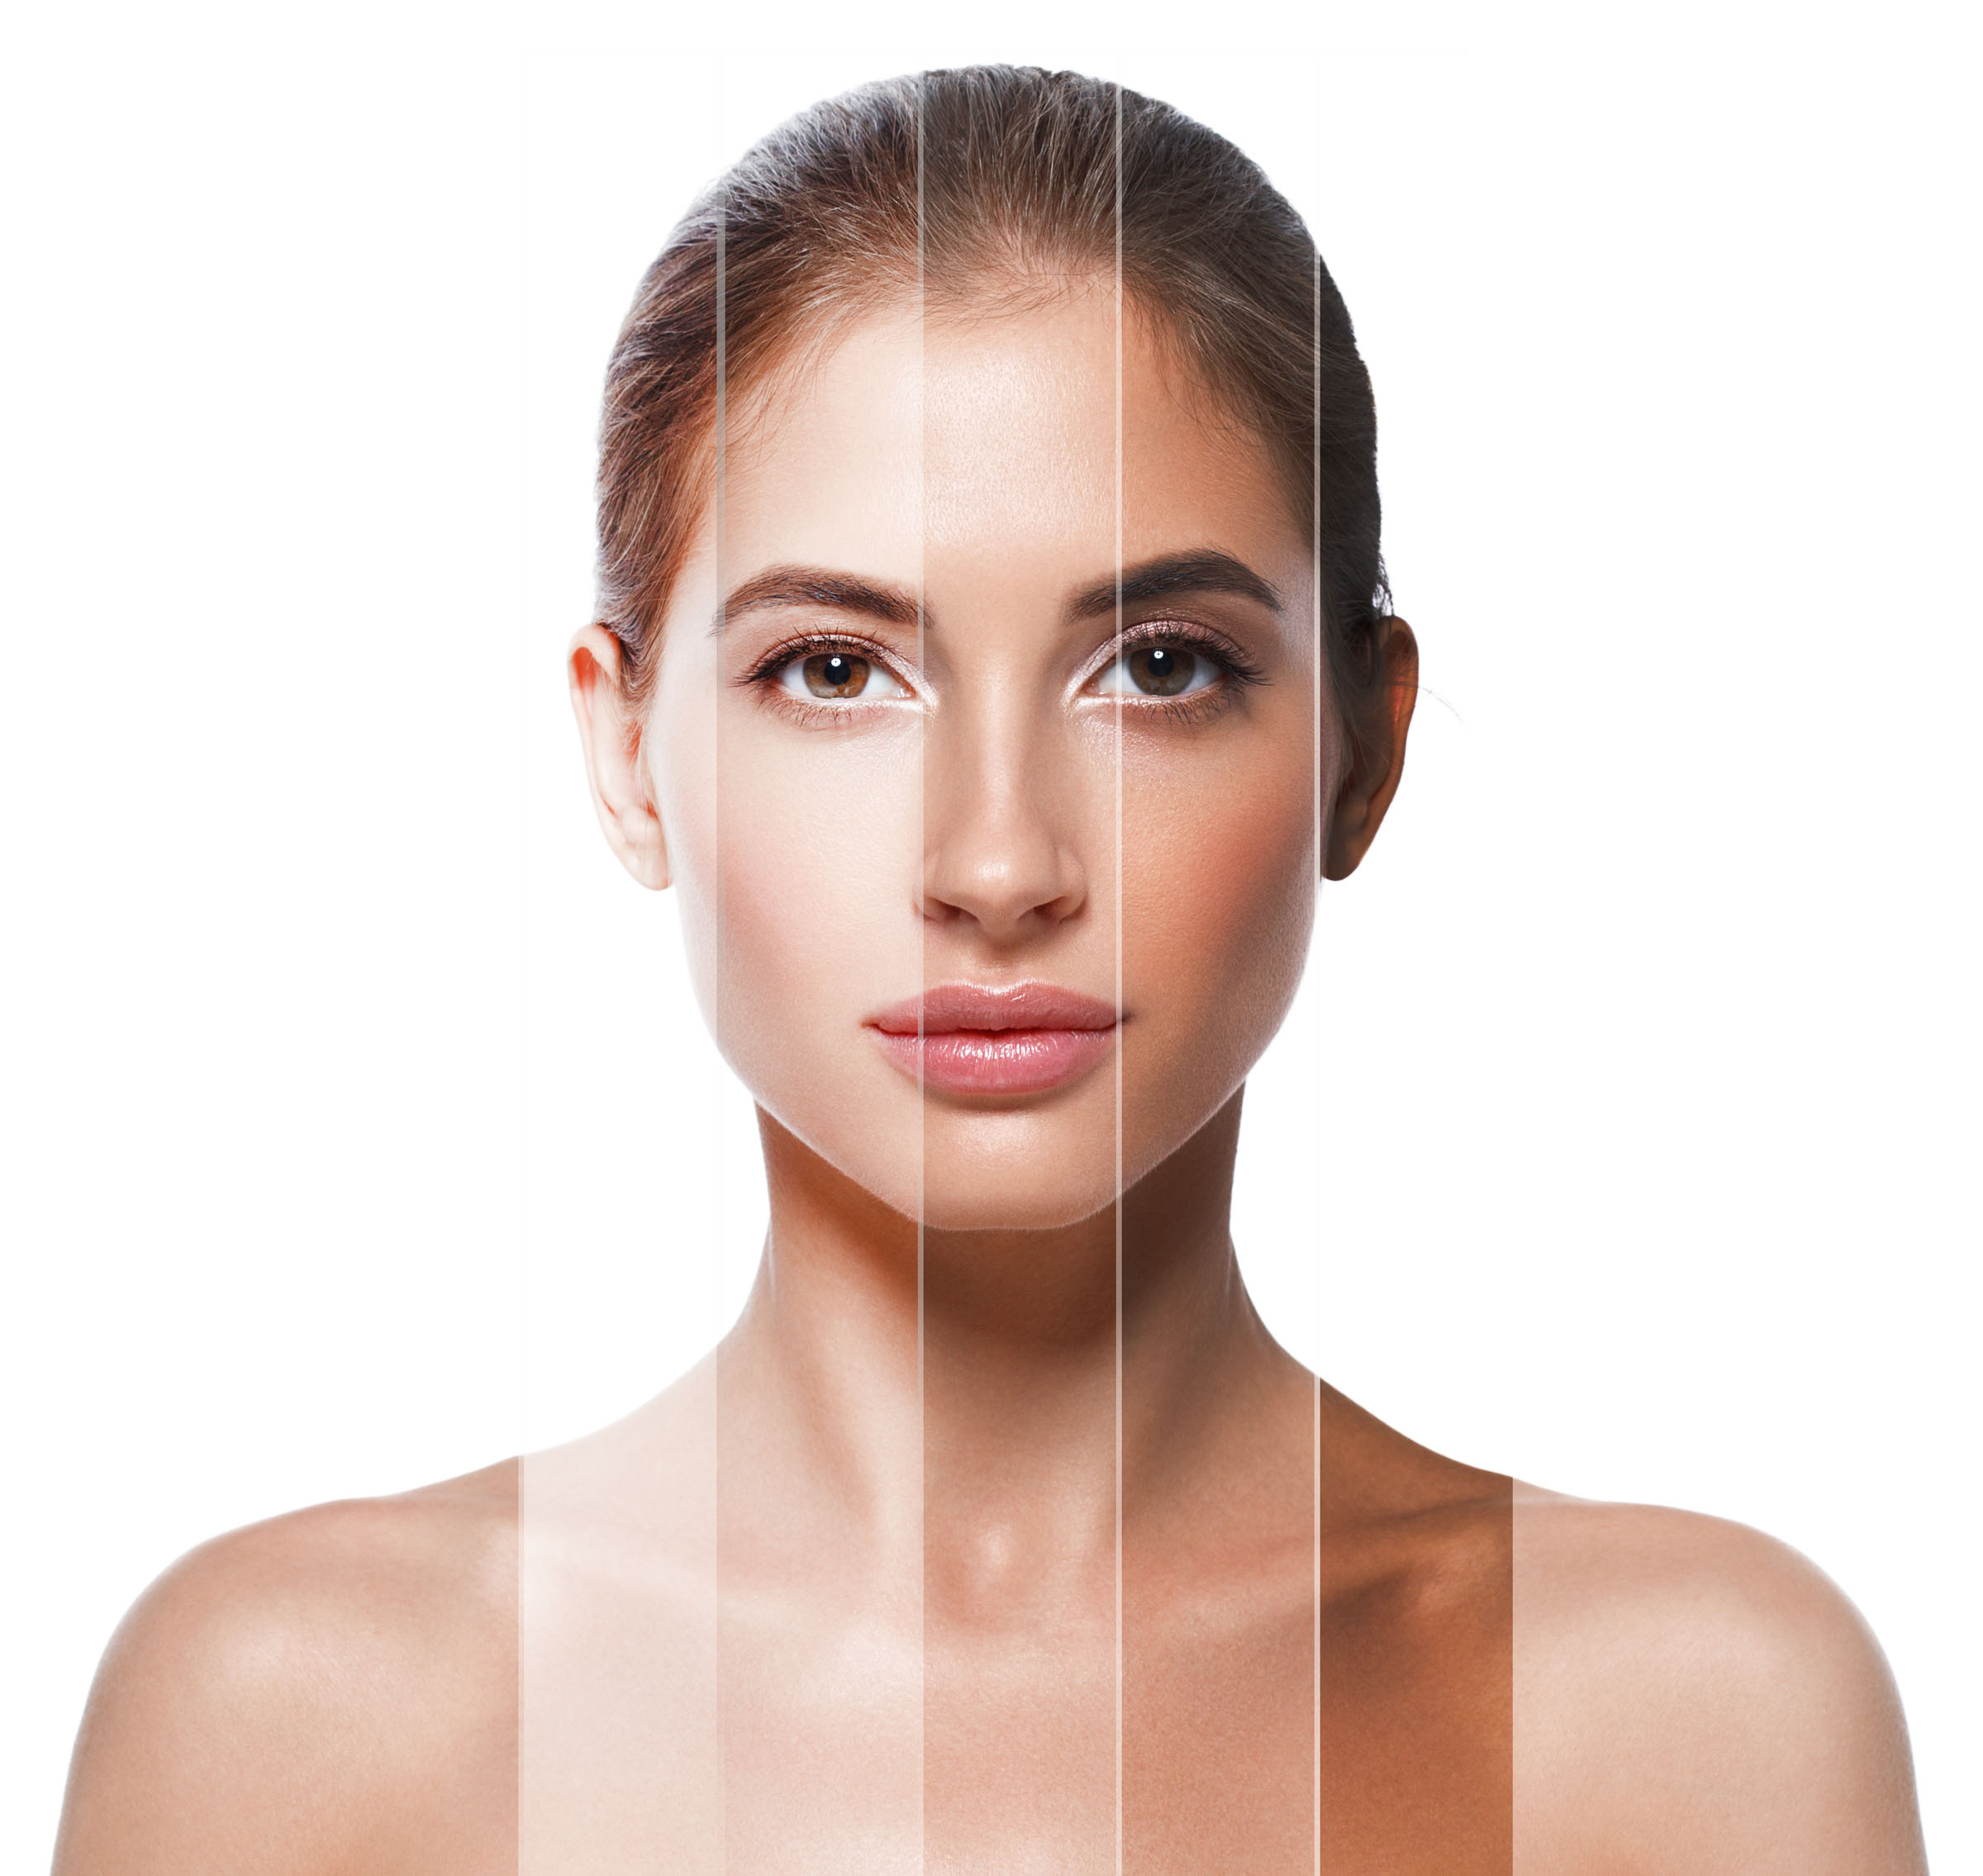 - Sun Damage, Acne and Melasma are not isolated issues. Problematic skin conditions can occur on all areas of the body.